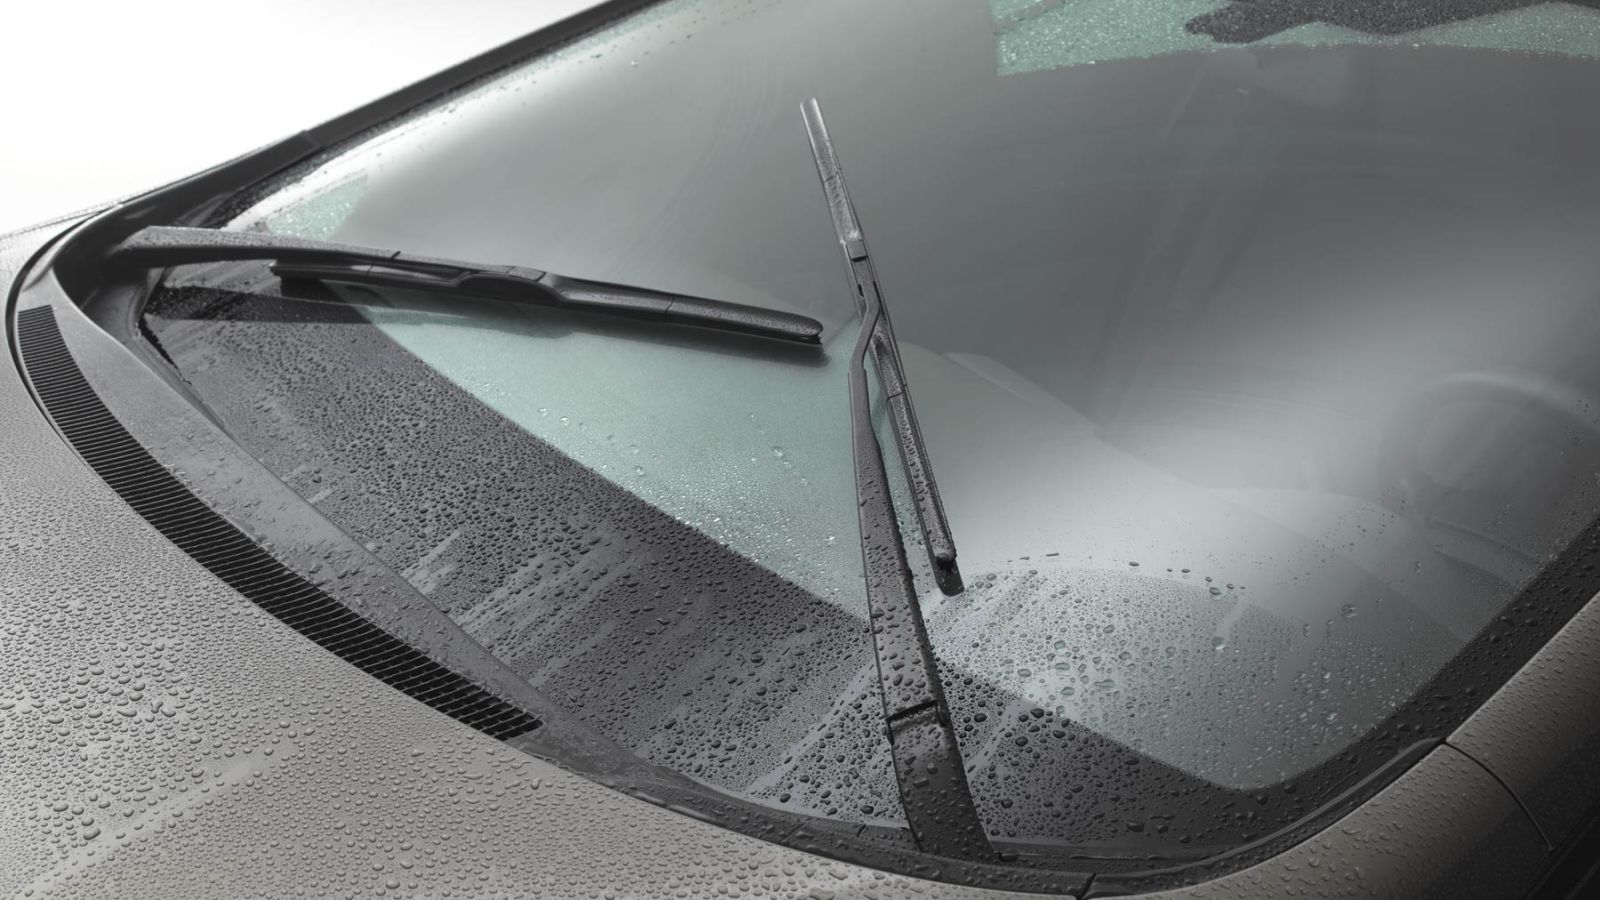 Maintenance of car wipers